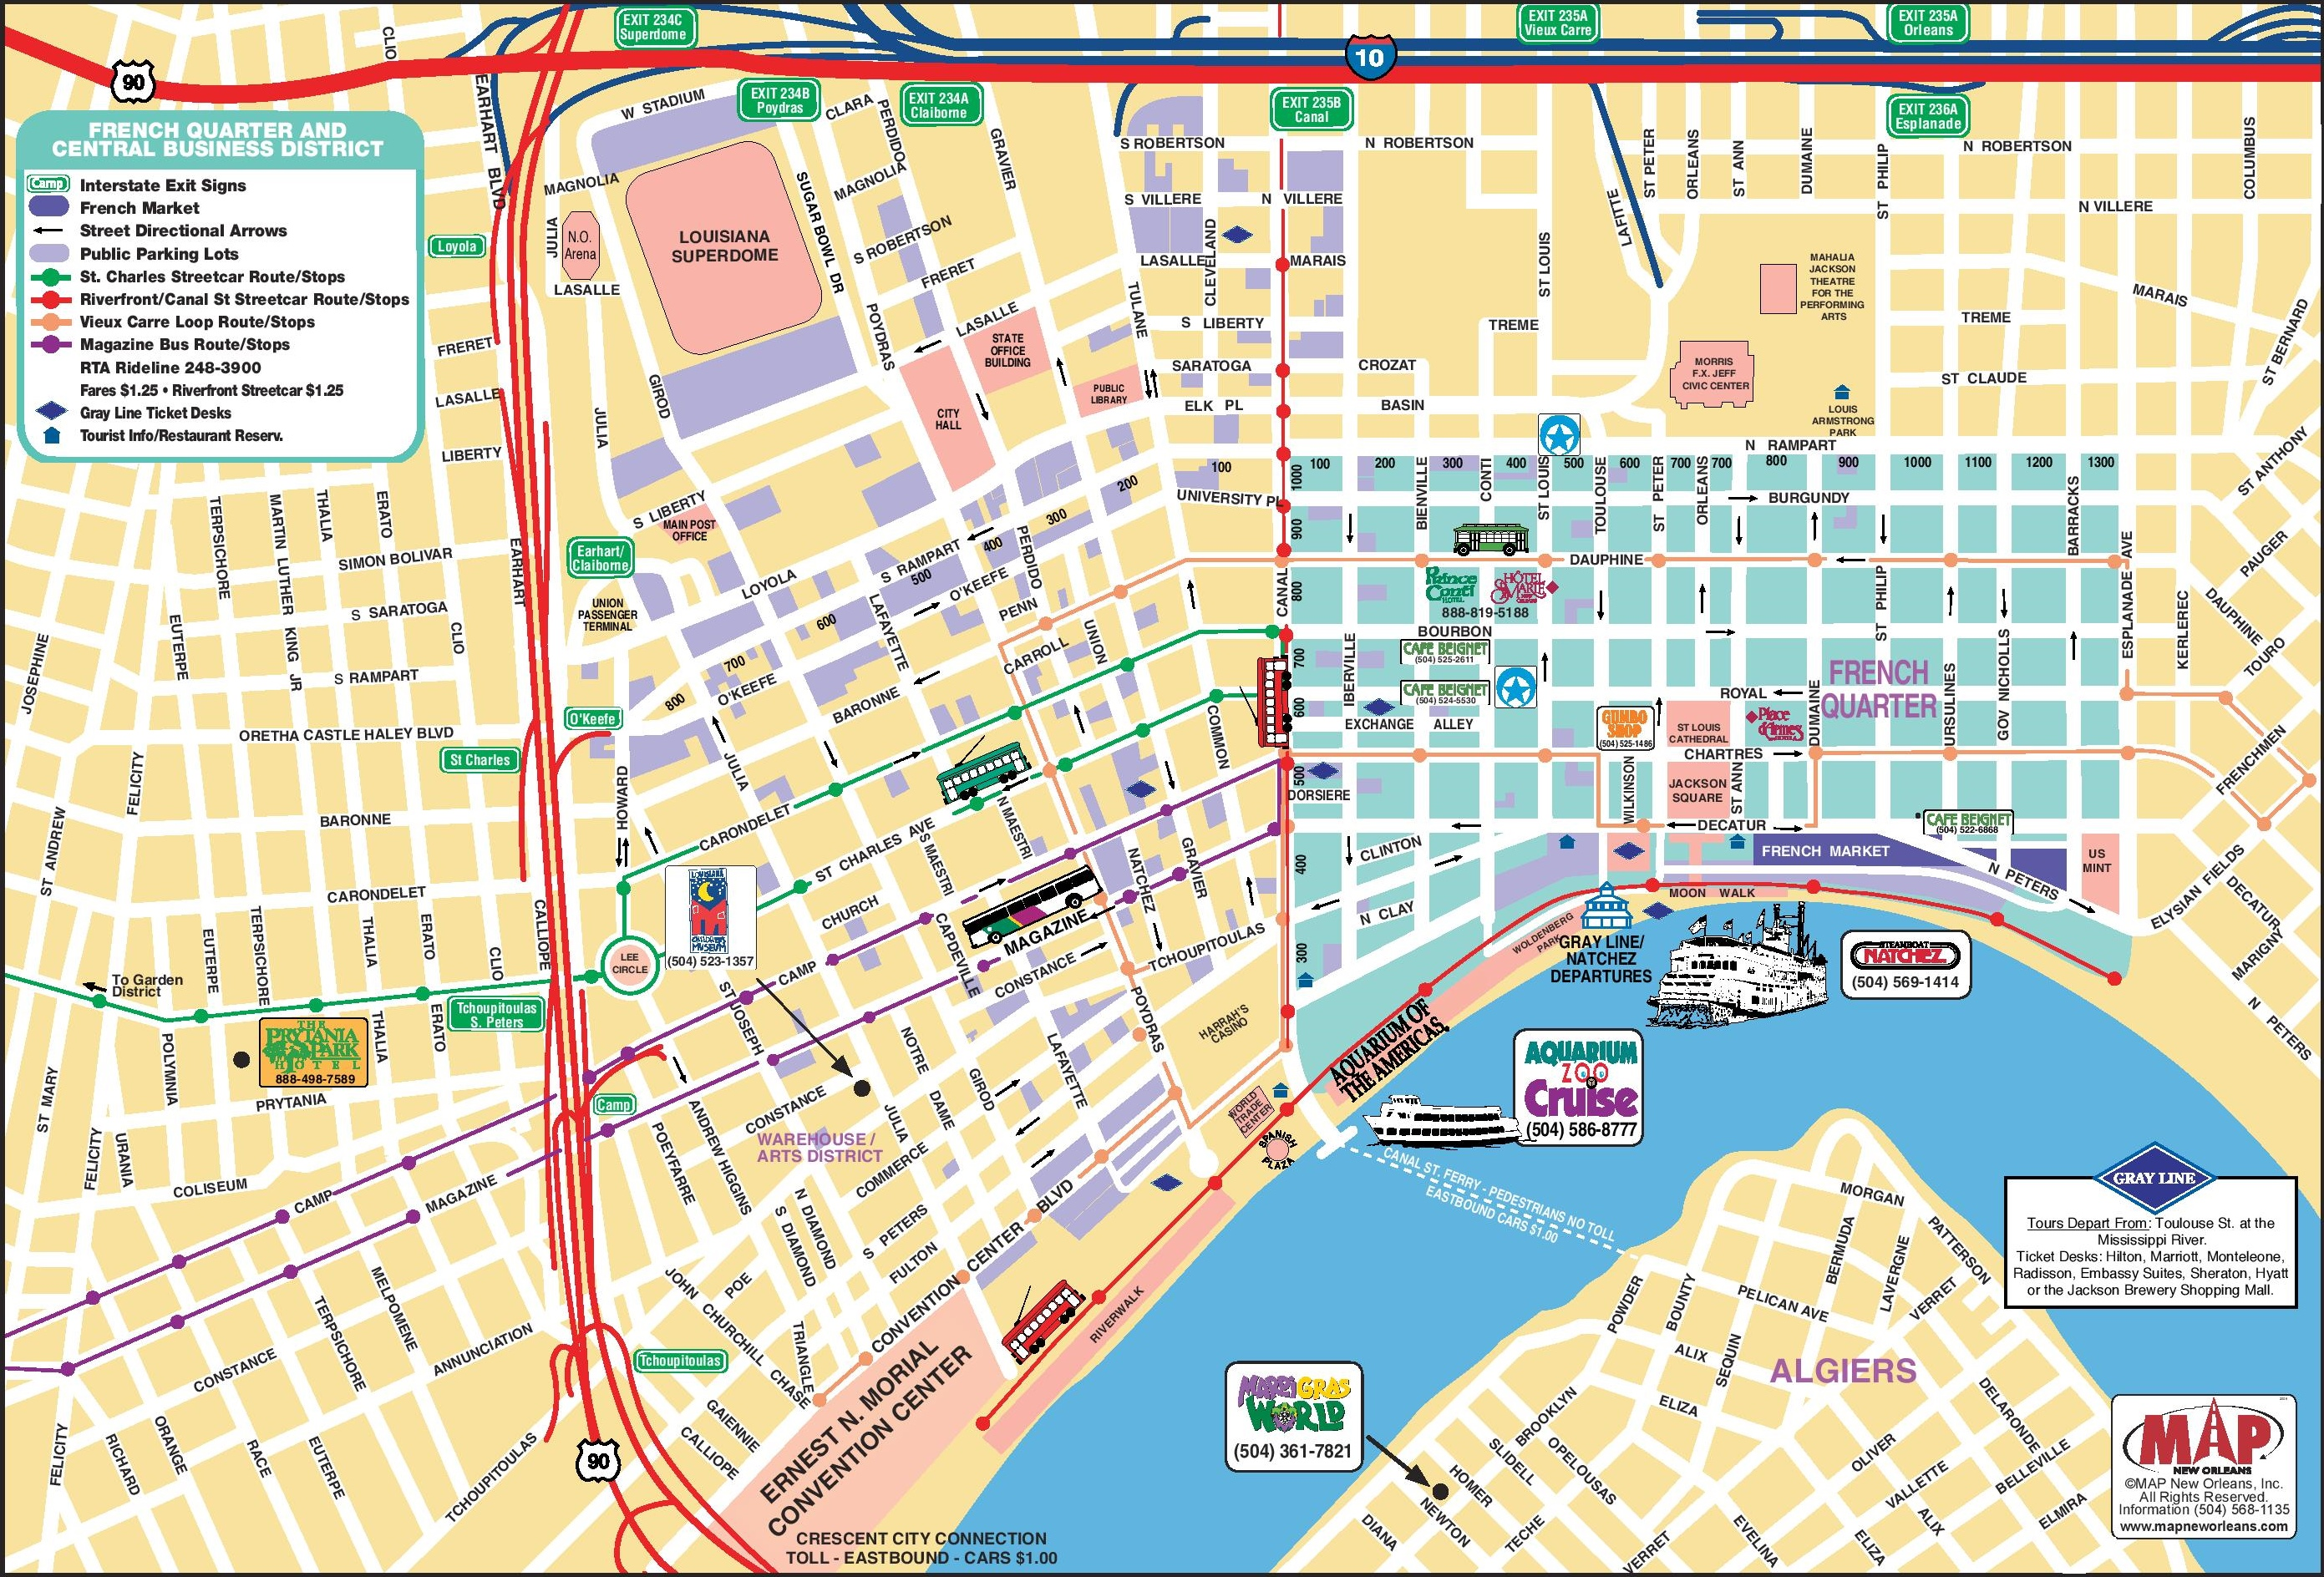 New Orleans French Quarter Tourist Map New Orleans French Quarter tourist map